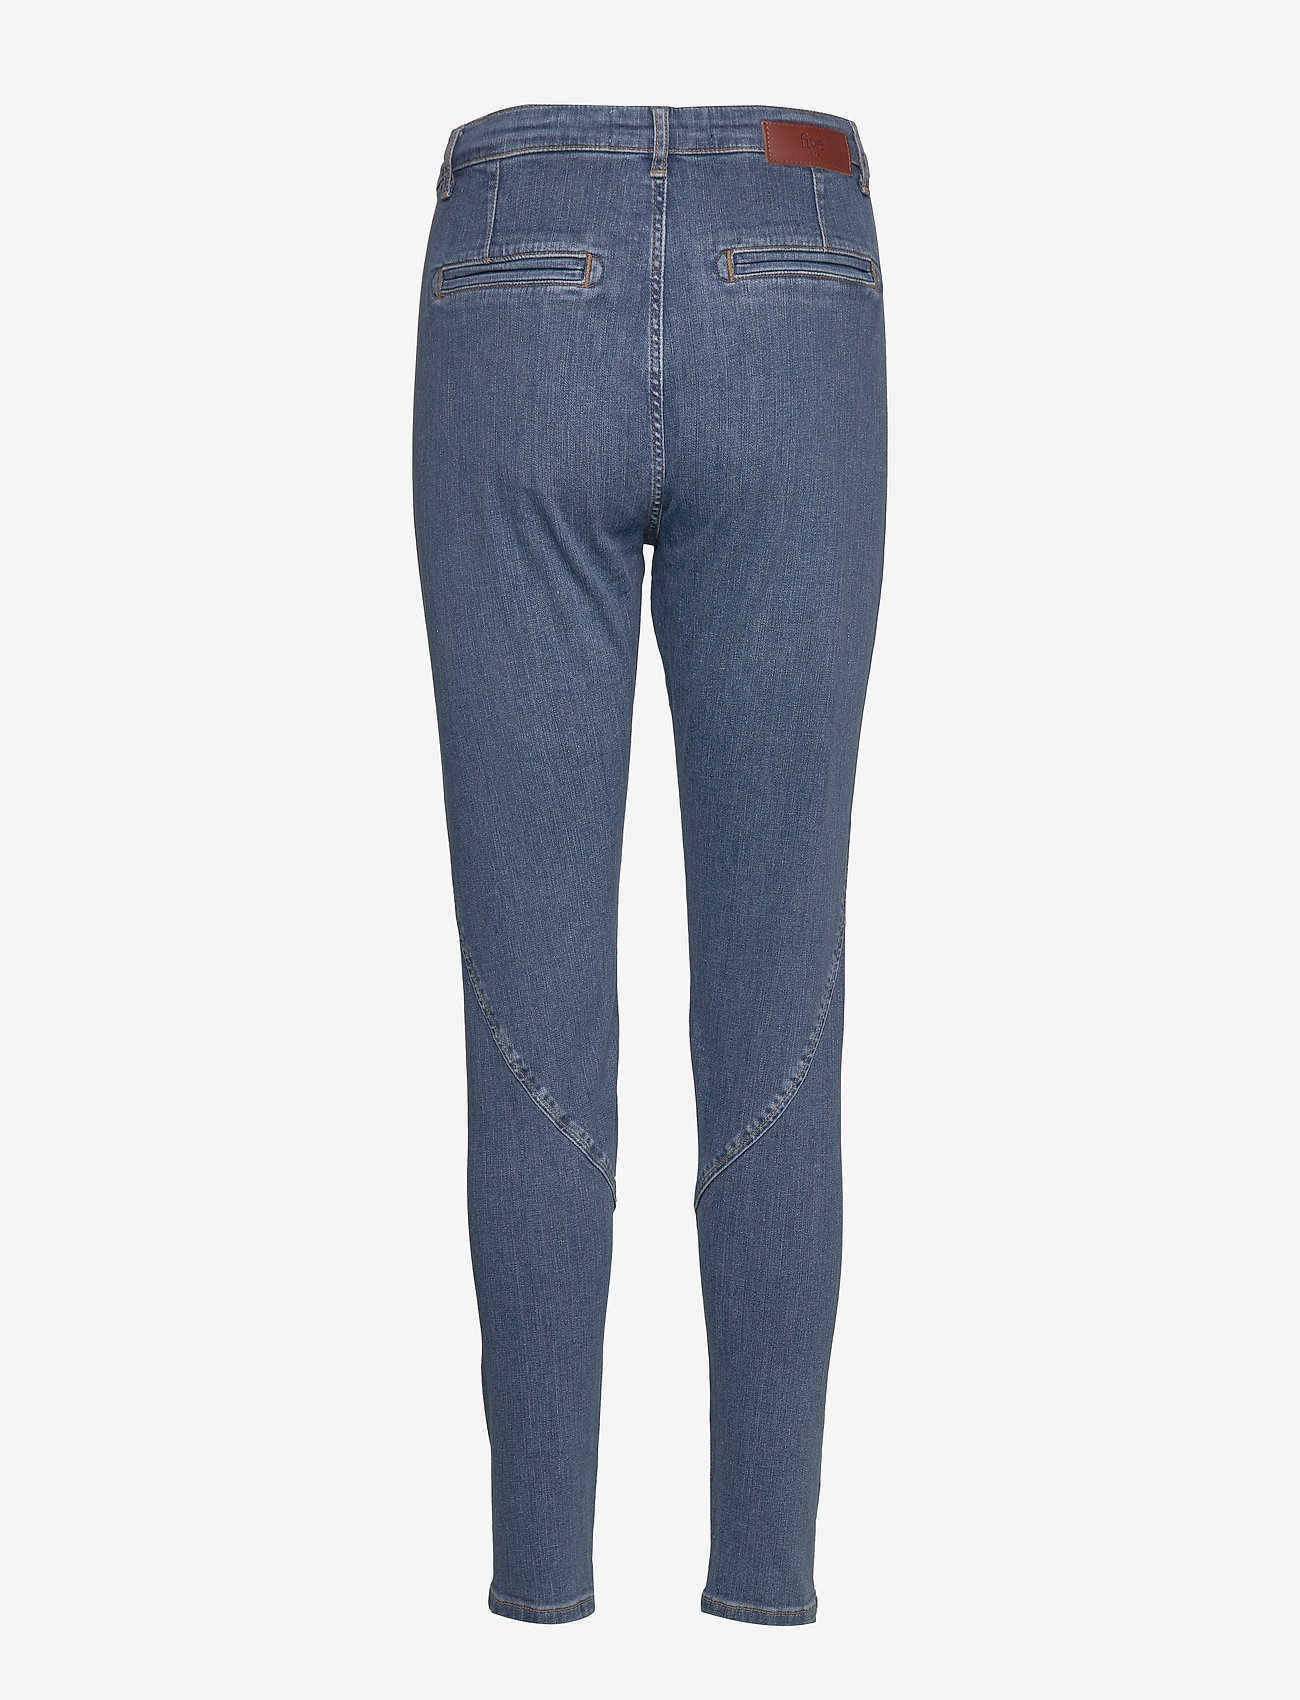 FIVEUNITS - Jolie 595 - dżinsy skinny fit - mid blue recycled - 1